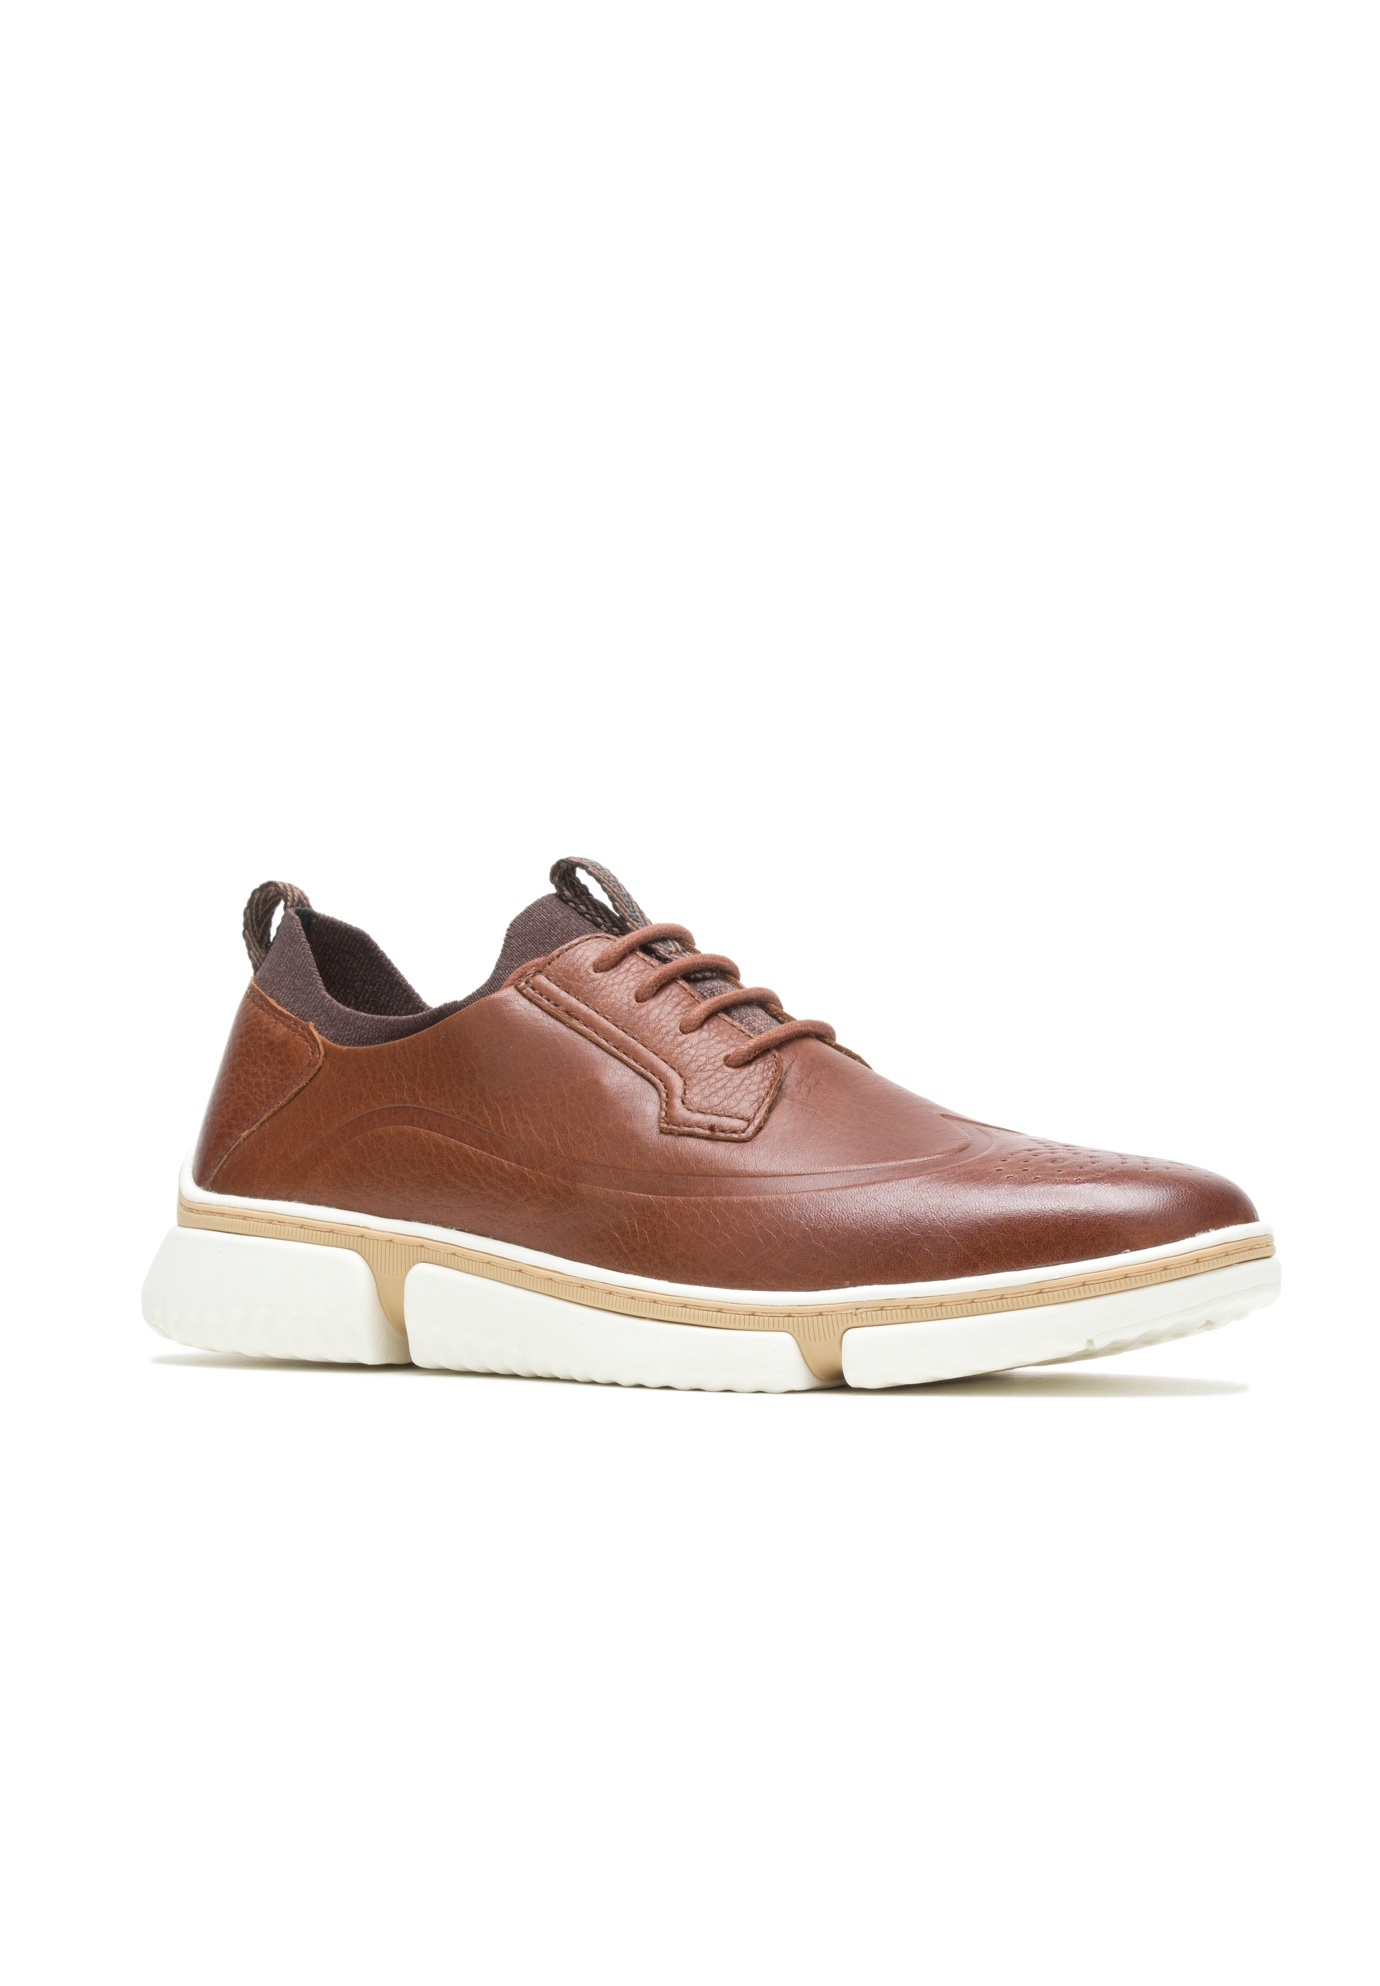 Hush Puppies® Bennett PT Oxford Shoes,